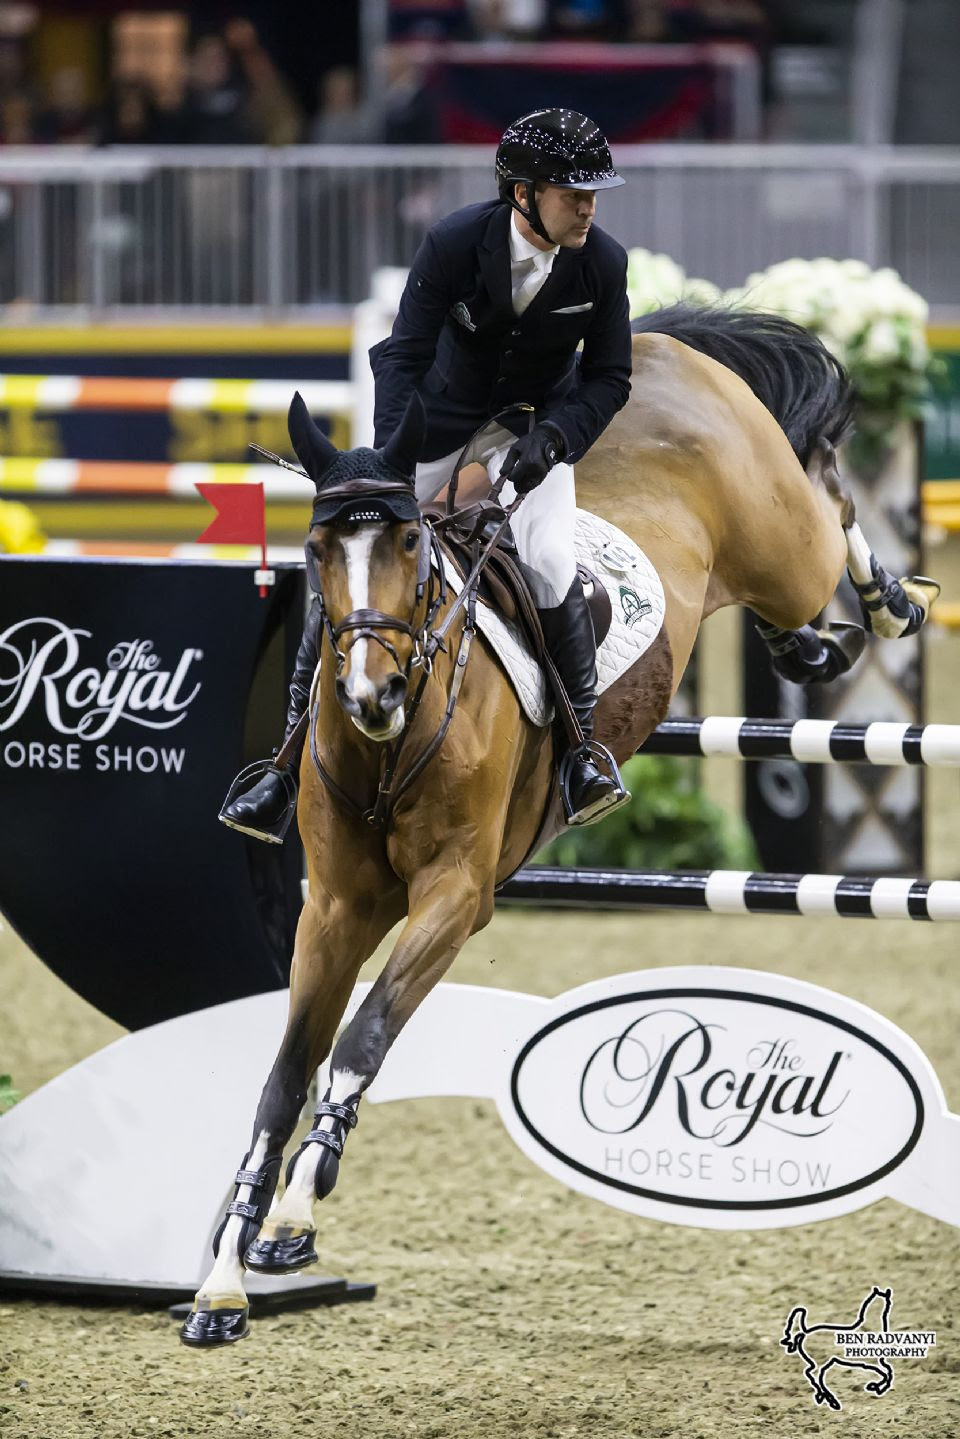 Eric Lamaze Makes Triumphant Return to Toronto's Royal Horse Show